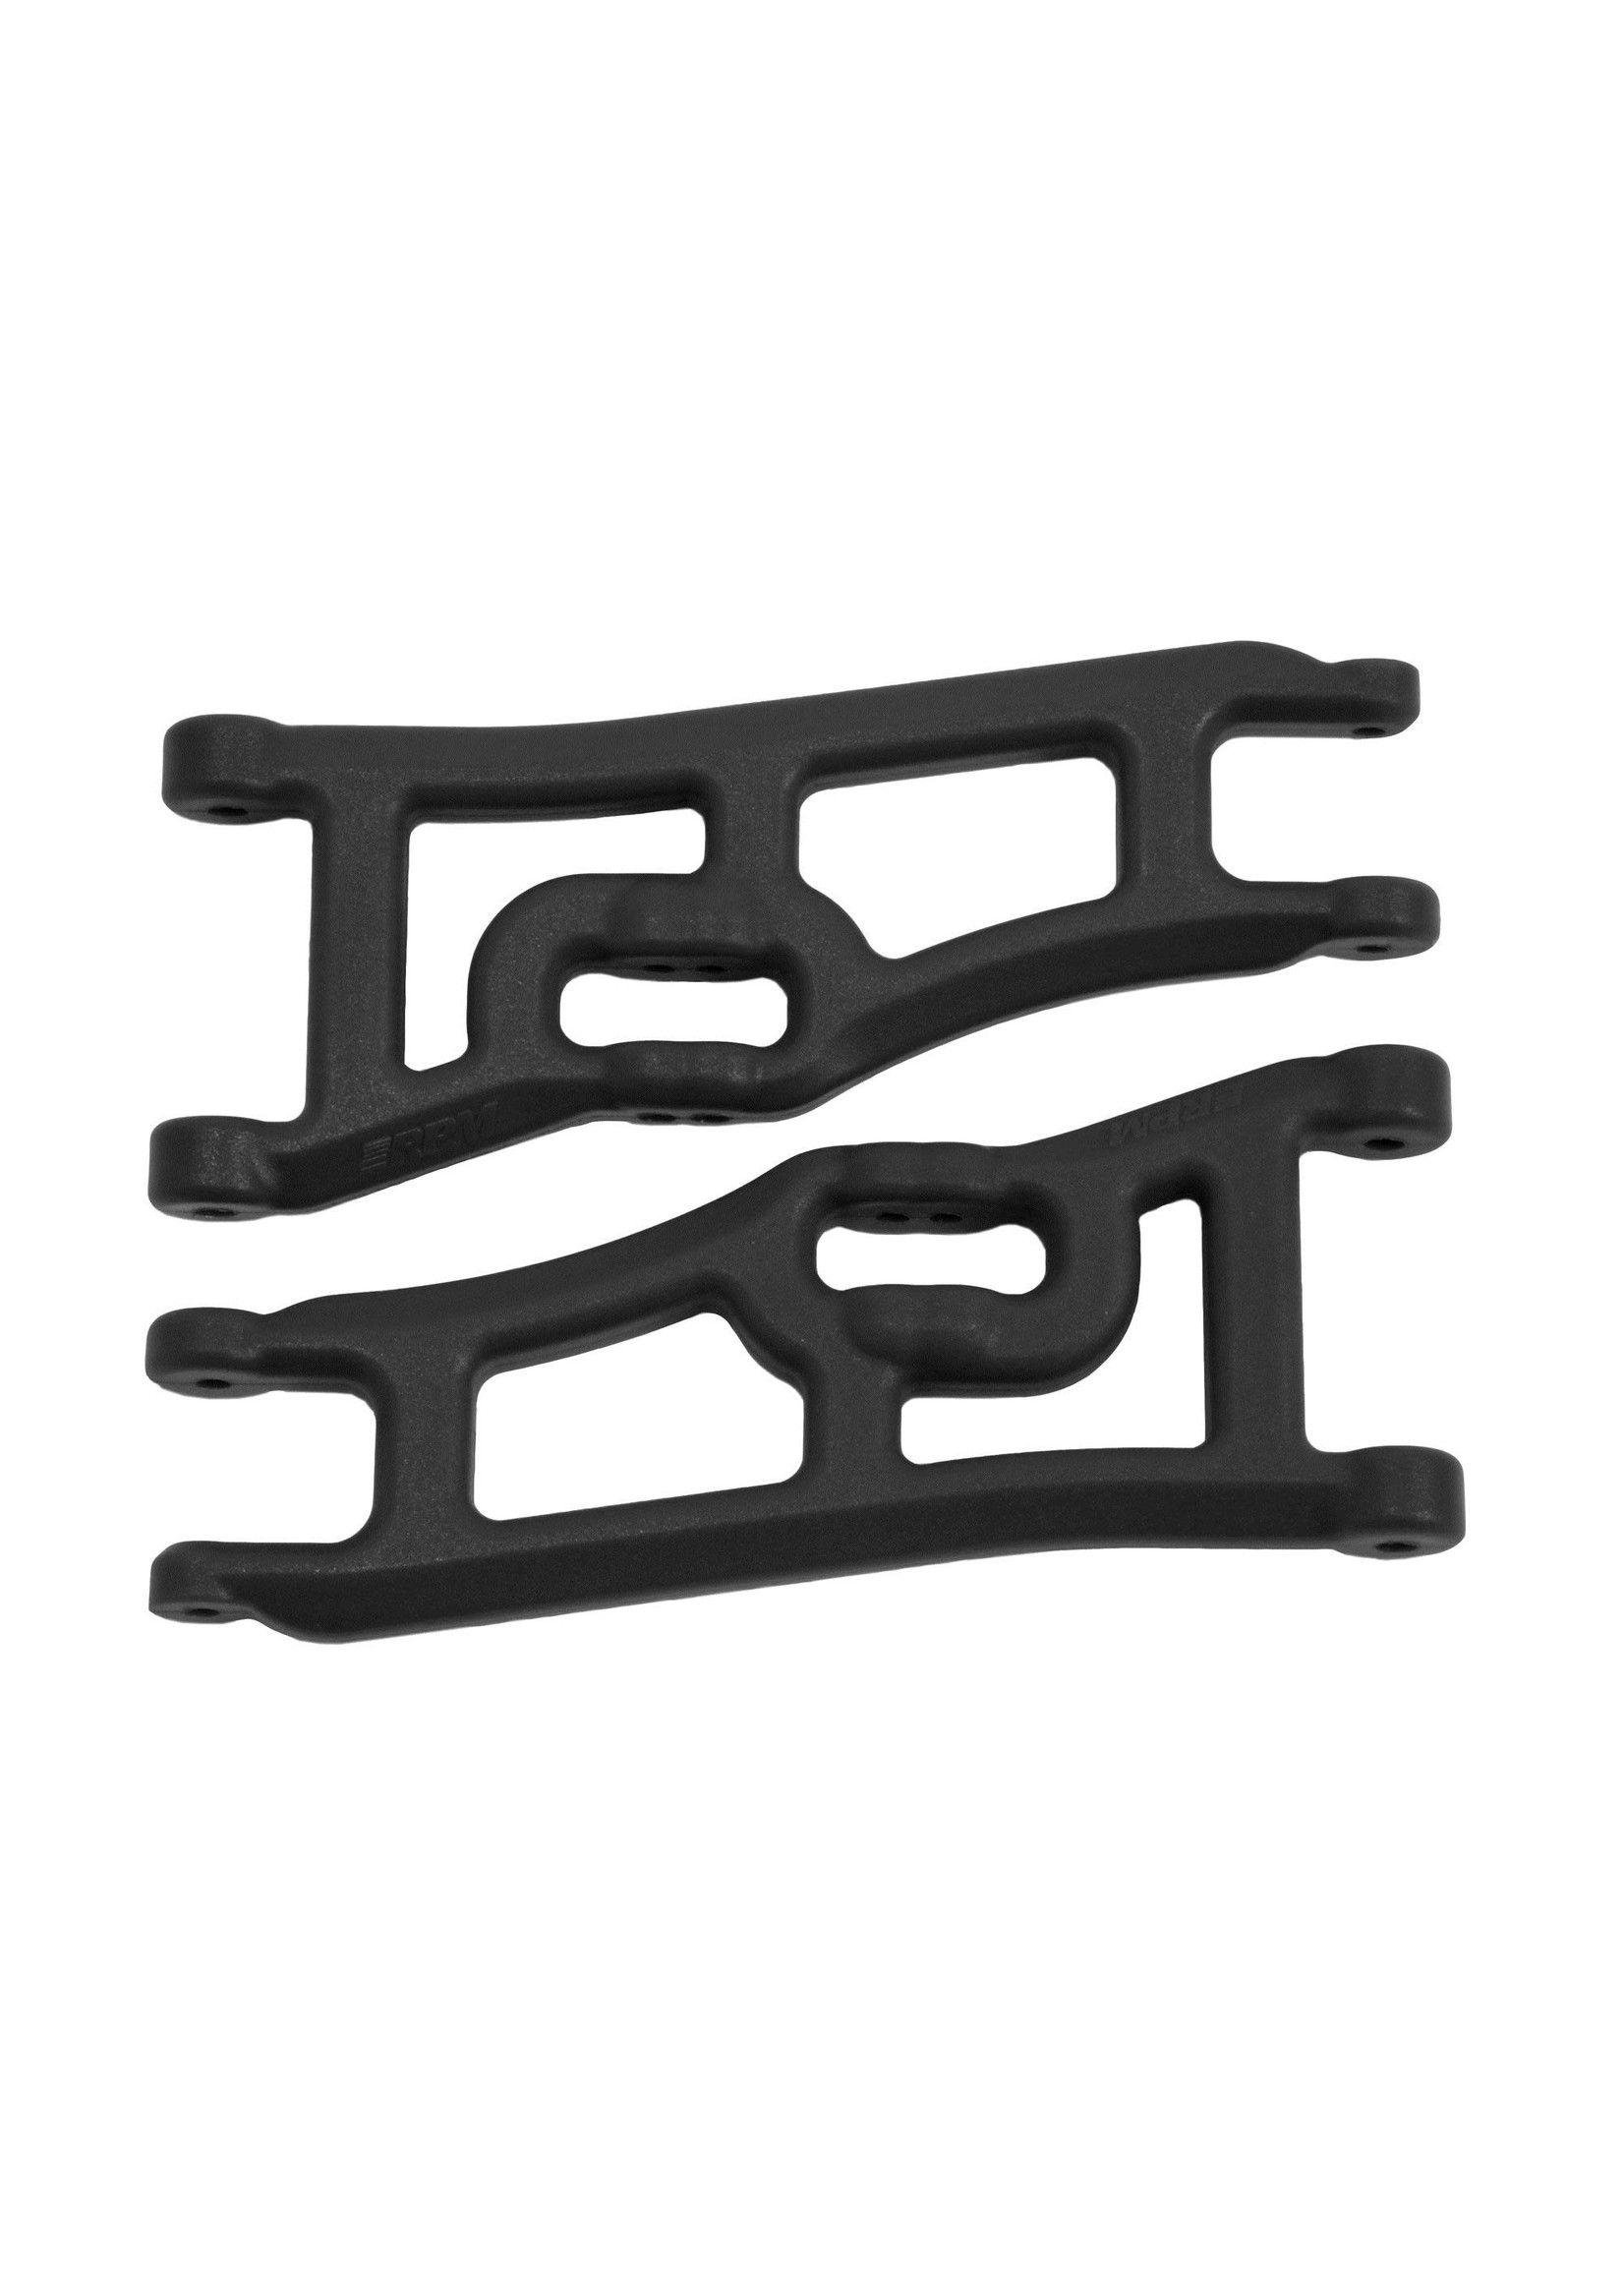 RPM RPM70662 RPM Wide Front A-arms for the Traxxas e-Rustler & Stampede 2wd - Black